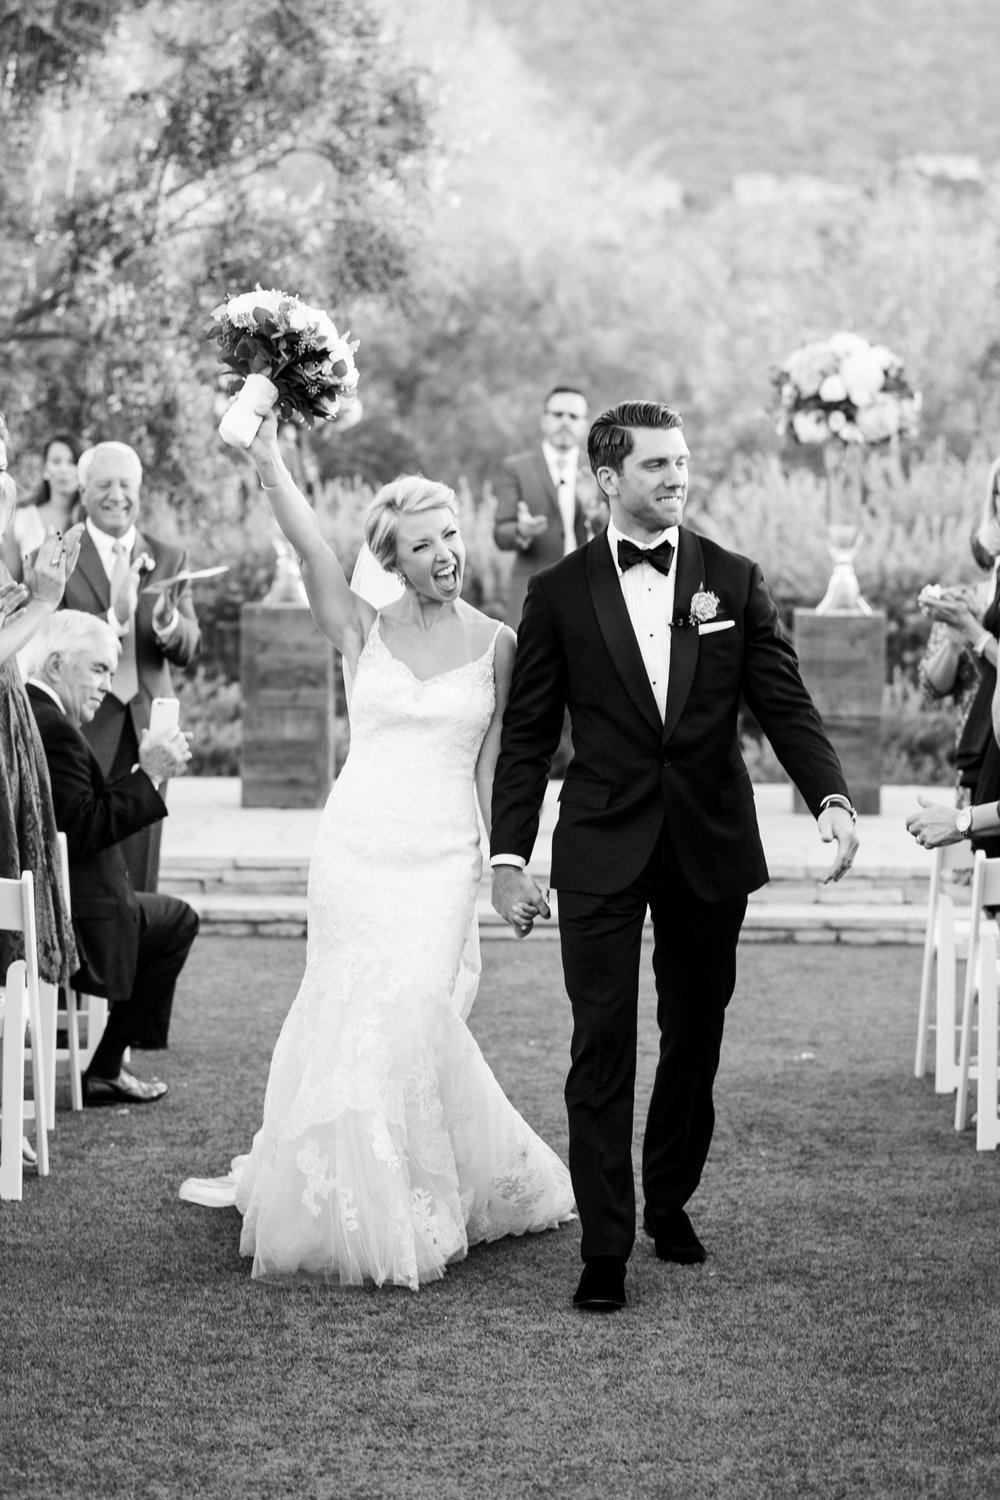 "<a href=""/jaclyn""><span style=""color:white;"">Jaclyn & Wade </span>→<strong>El Chorro Wedding <br> Paradise Valley, Arizona </strong></a>"